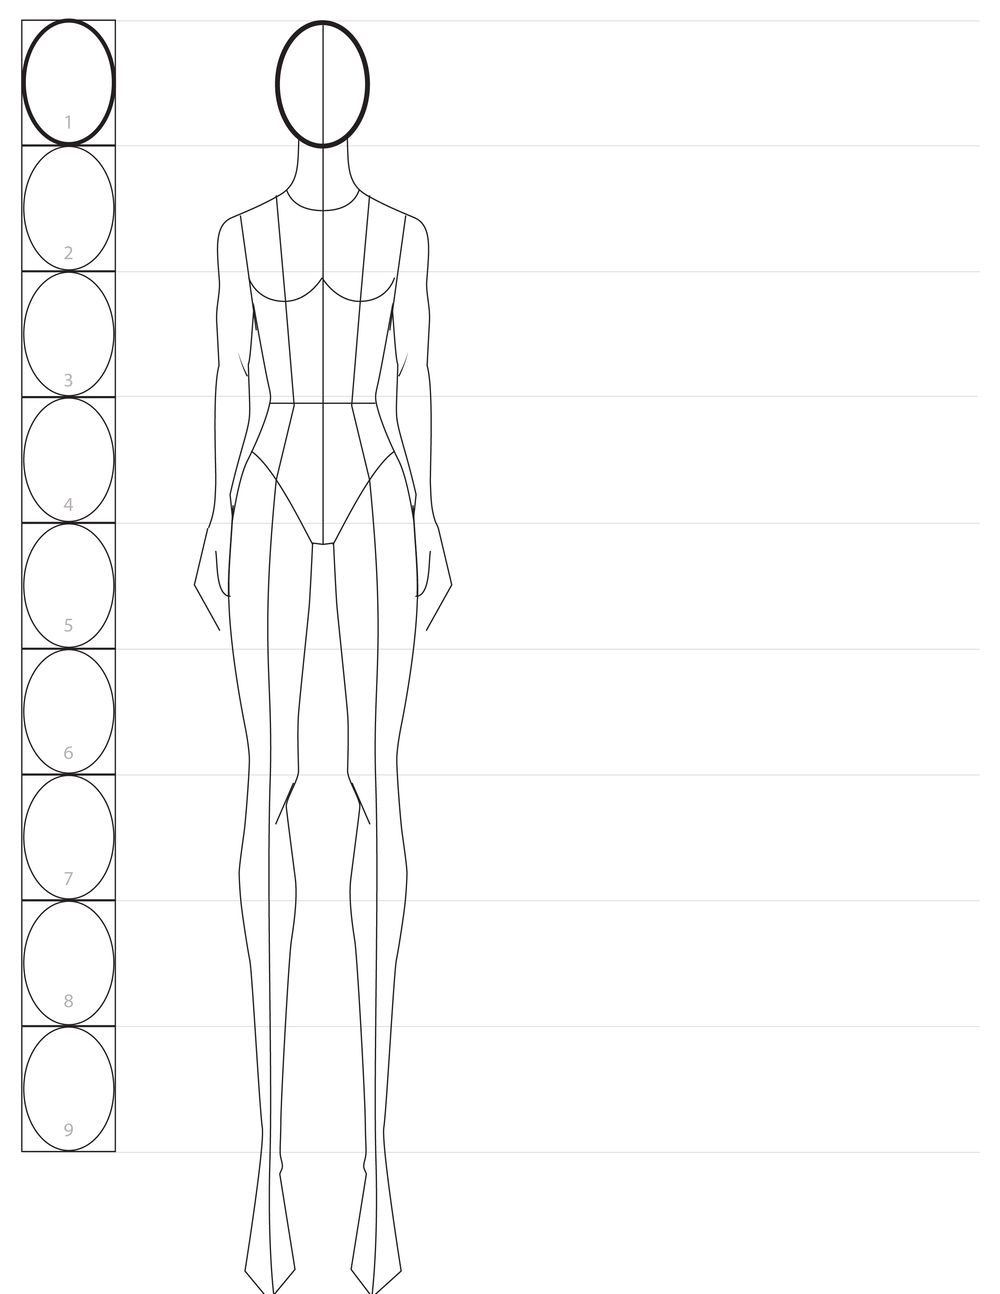 Photo of Fashion Sketching: a Step-by-step Guide to Drawing the Basic Fashion Croquis with 9 Heads Proportions — amiko simonetti